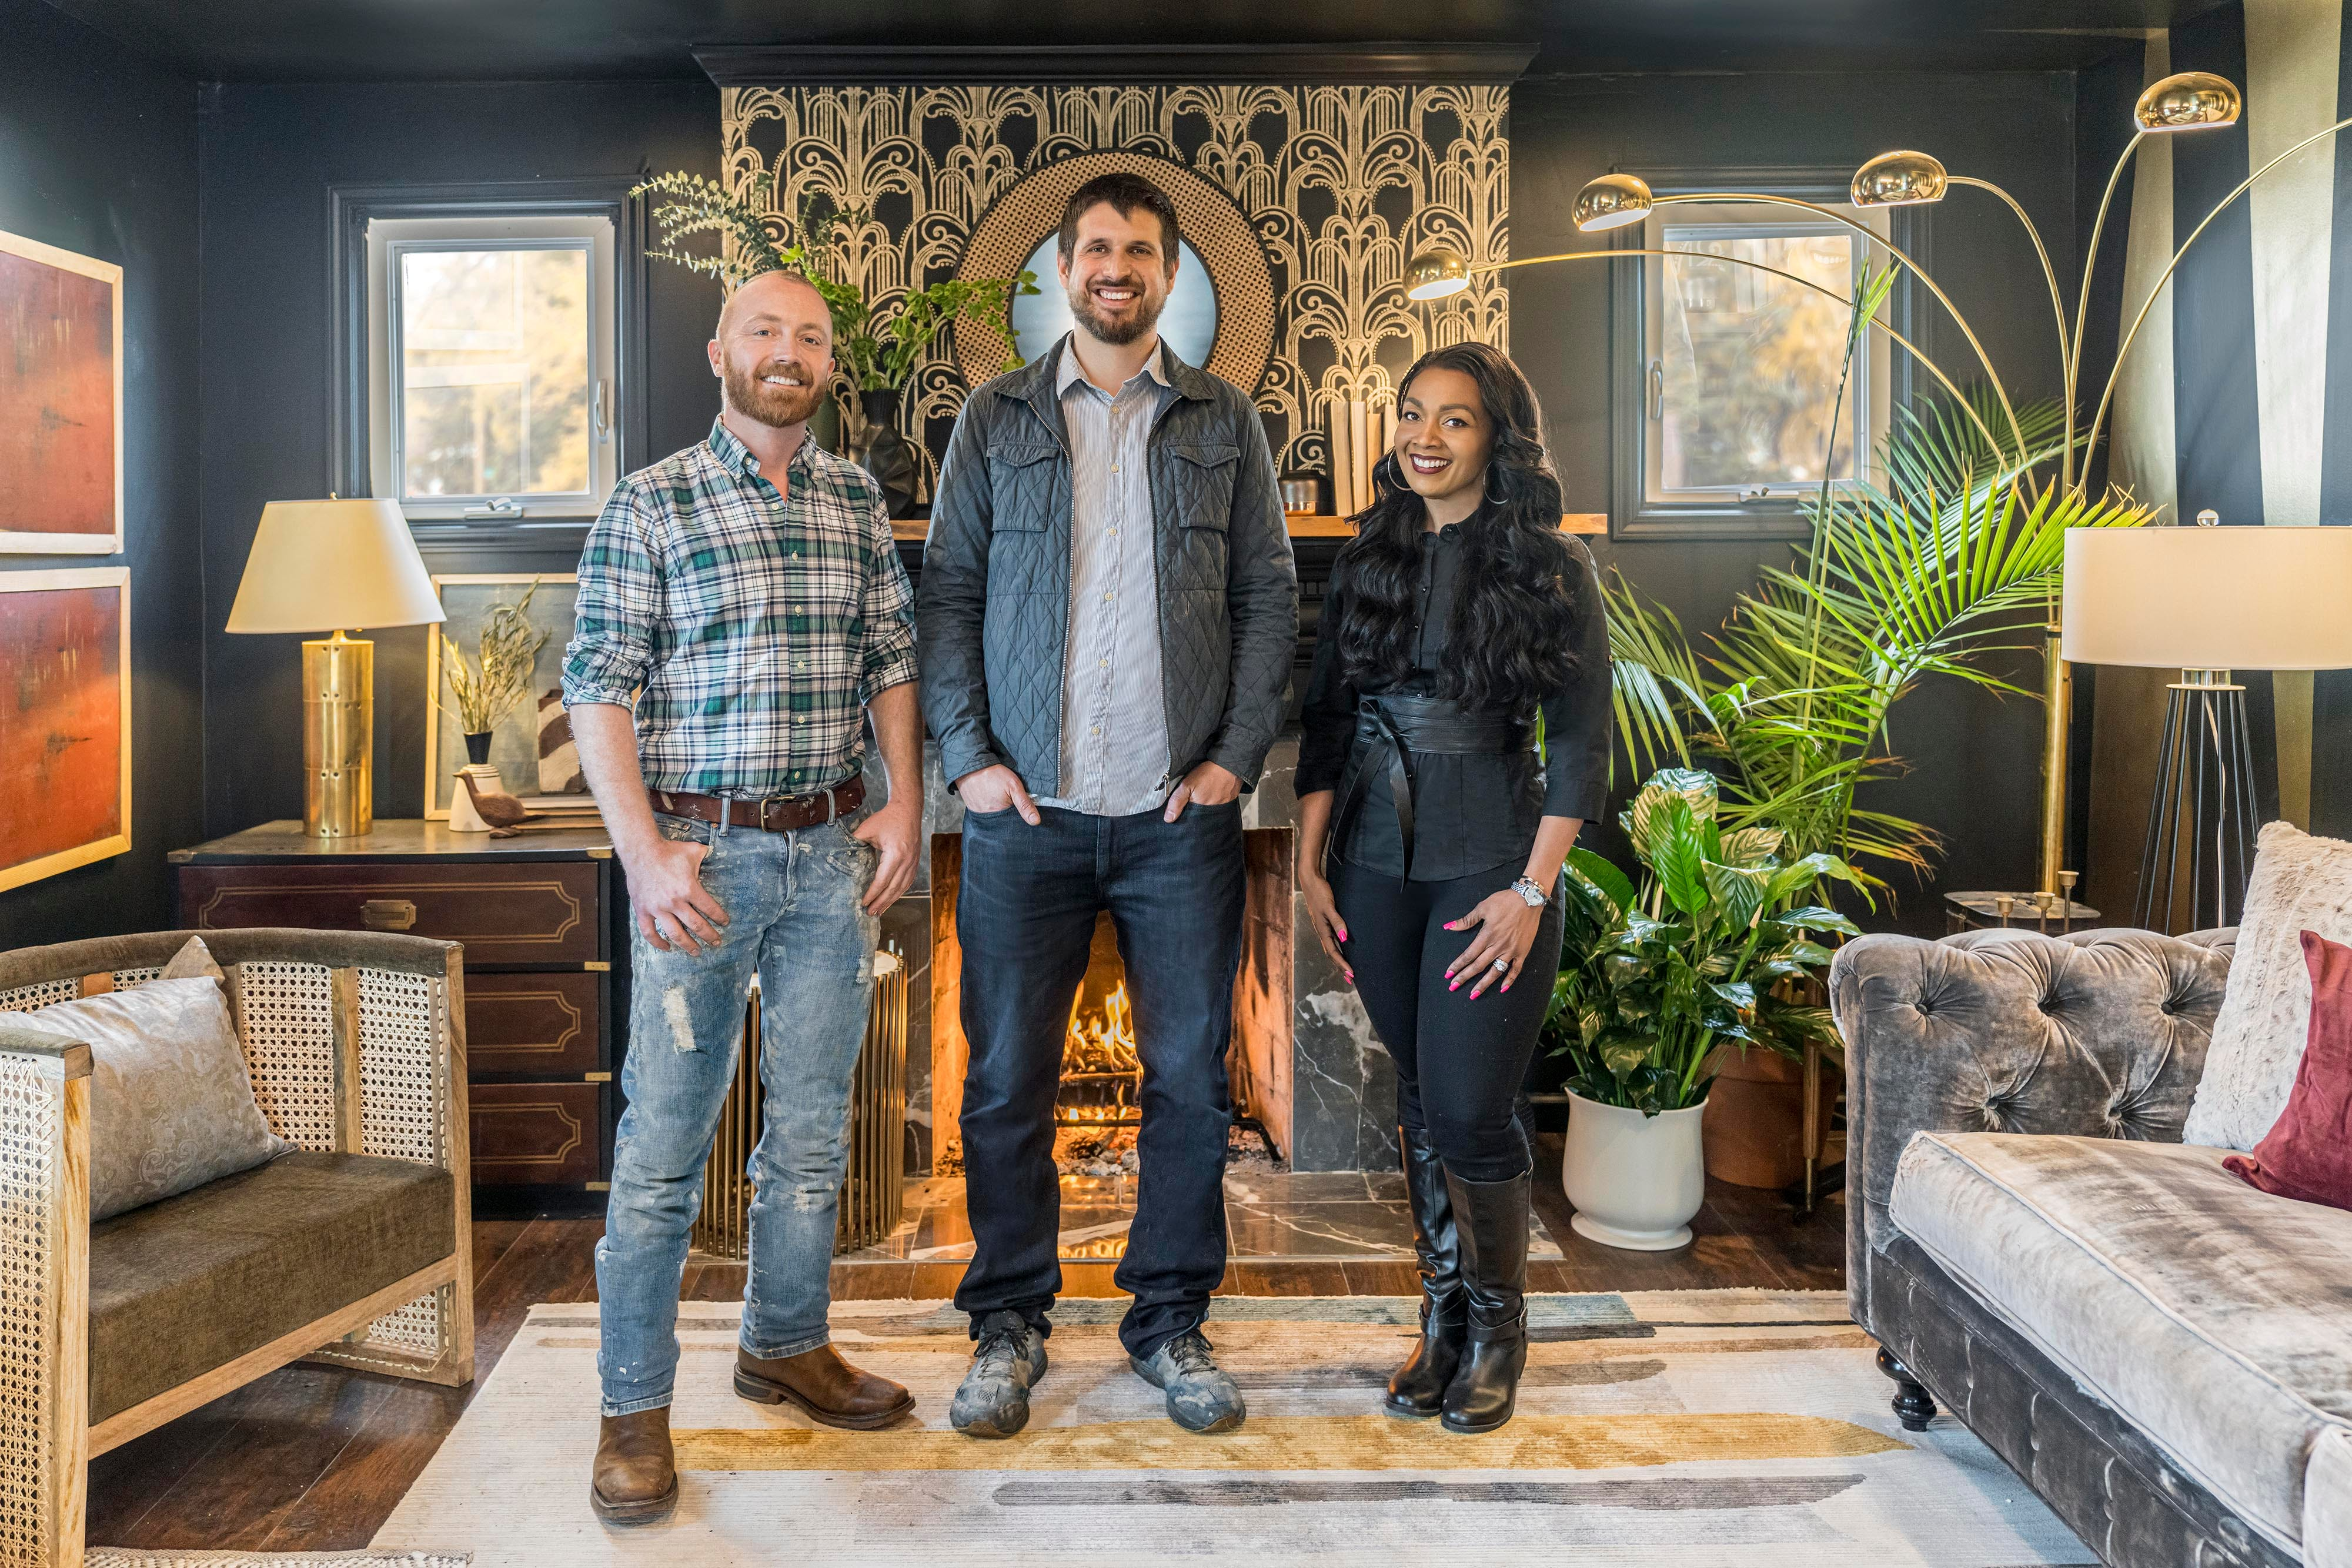 Detroit home renovation show 'Bargain Block' picked up for second season